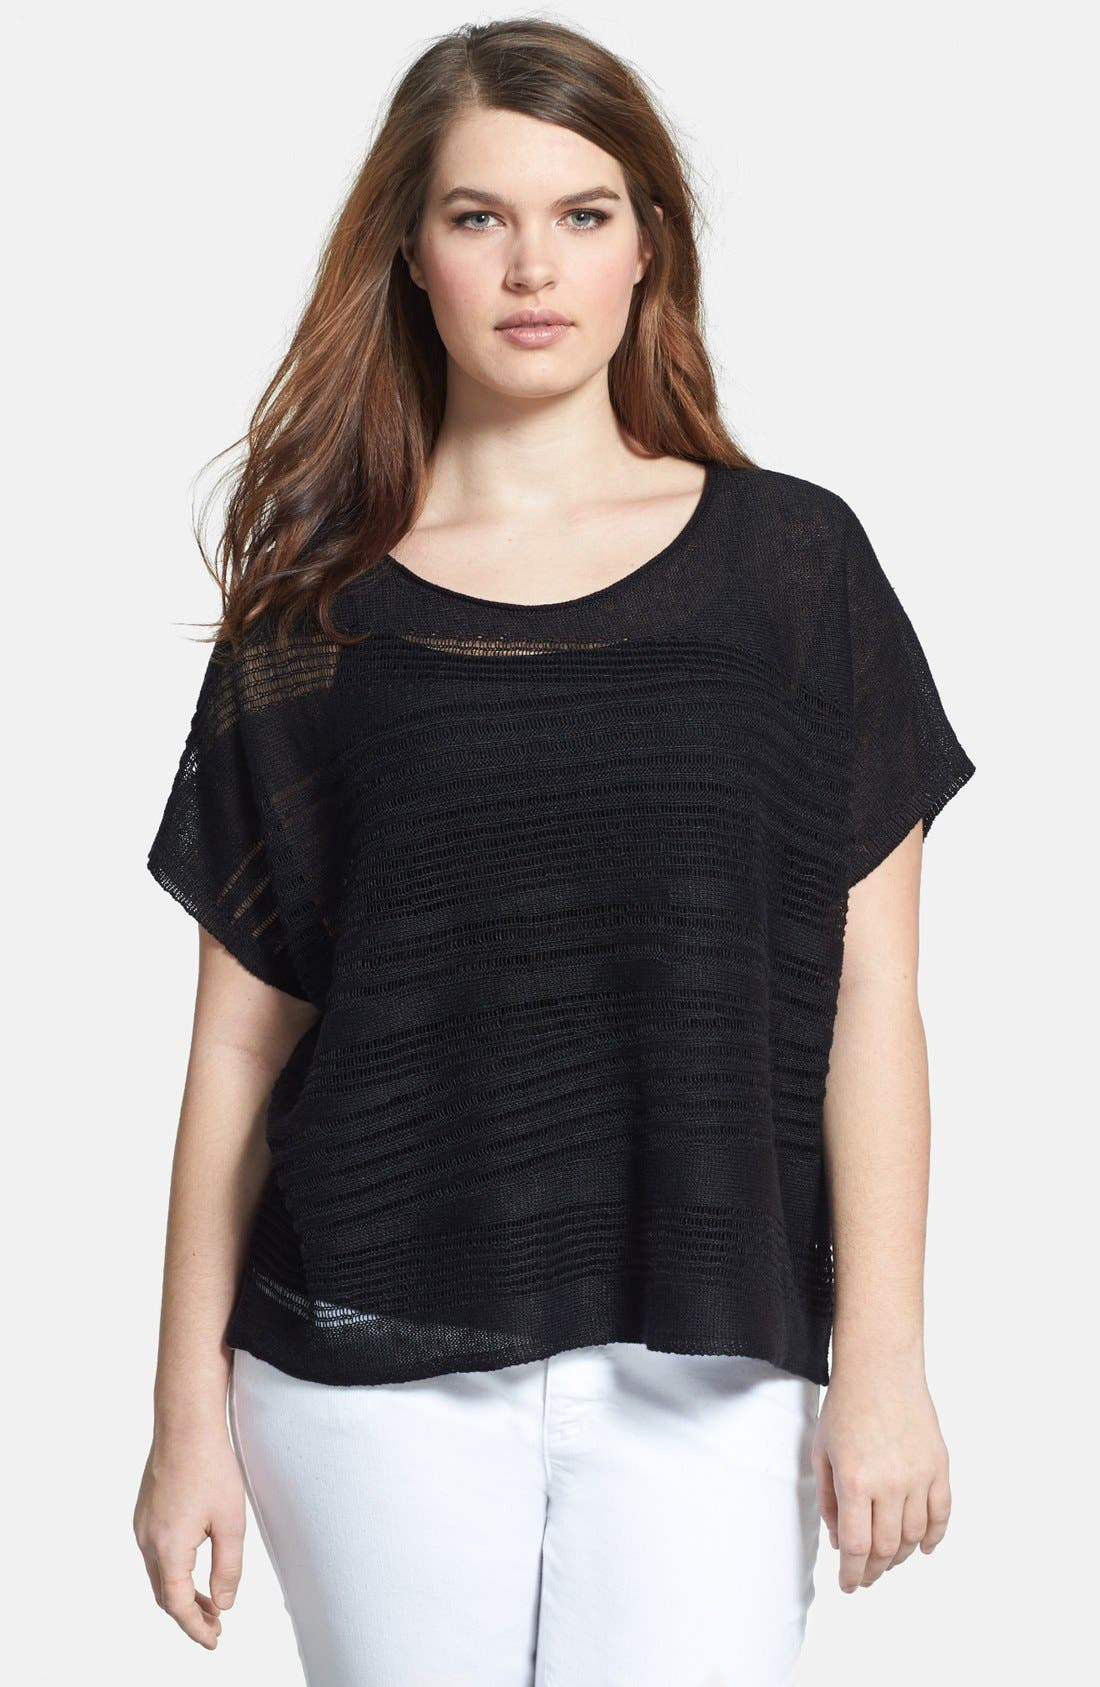 Alternate Image 1 Selected - Eileen Fisher Bateau Neck Pointelle Knit Organic Linen Top (Plus Size)